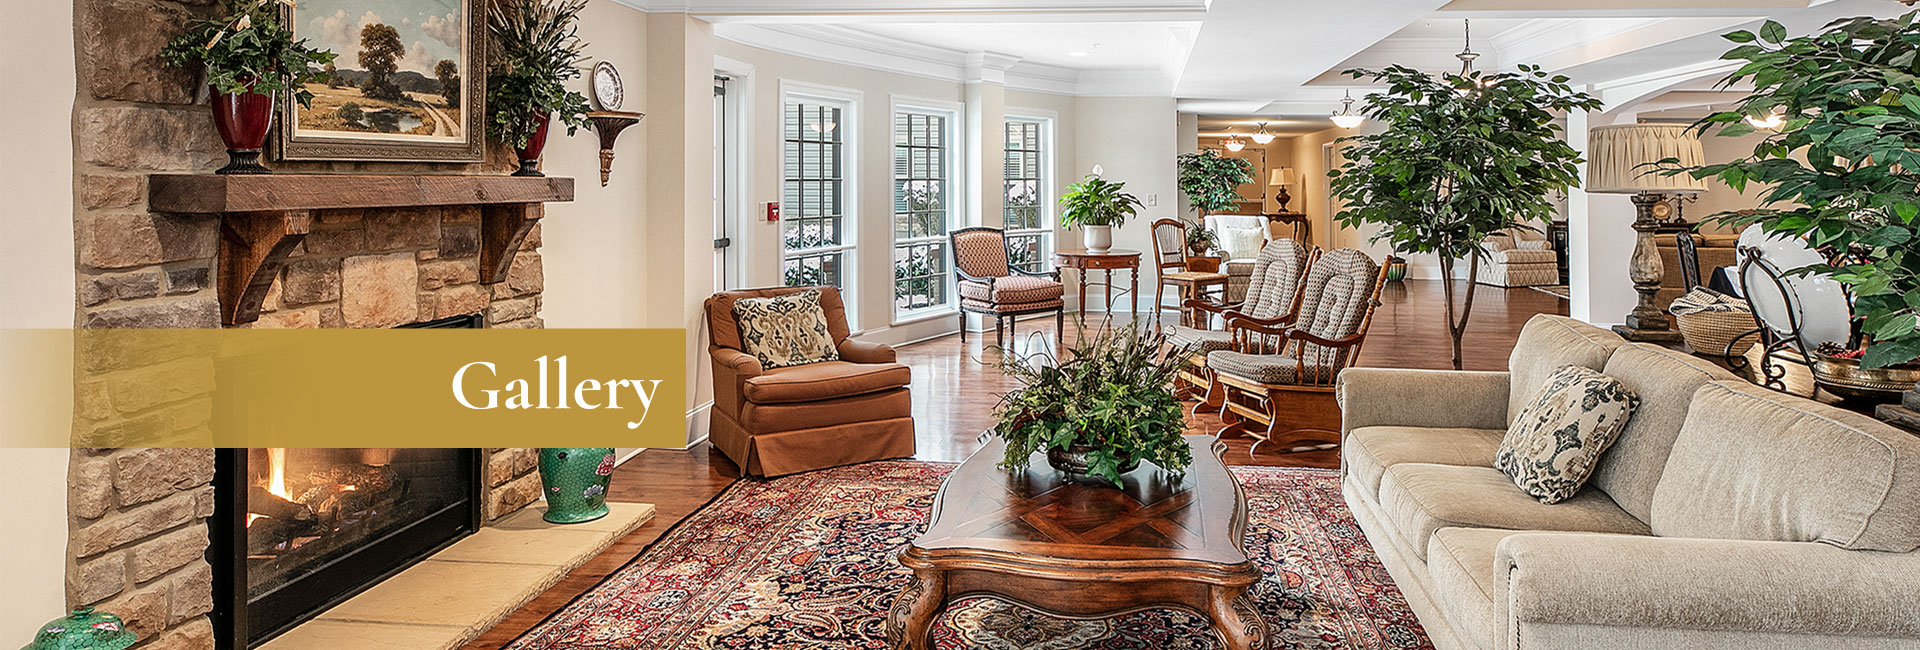 This lovely lounge area is just another common area where residents can relax with other residents or visit with friends and family in a safe and comfortable environment.